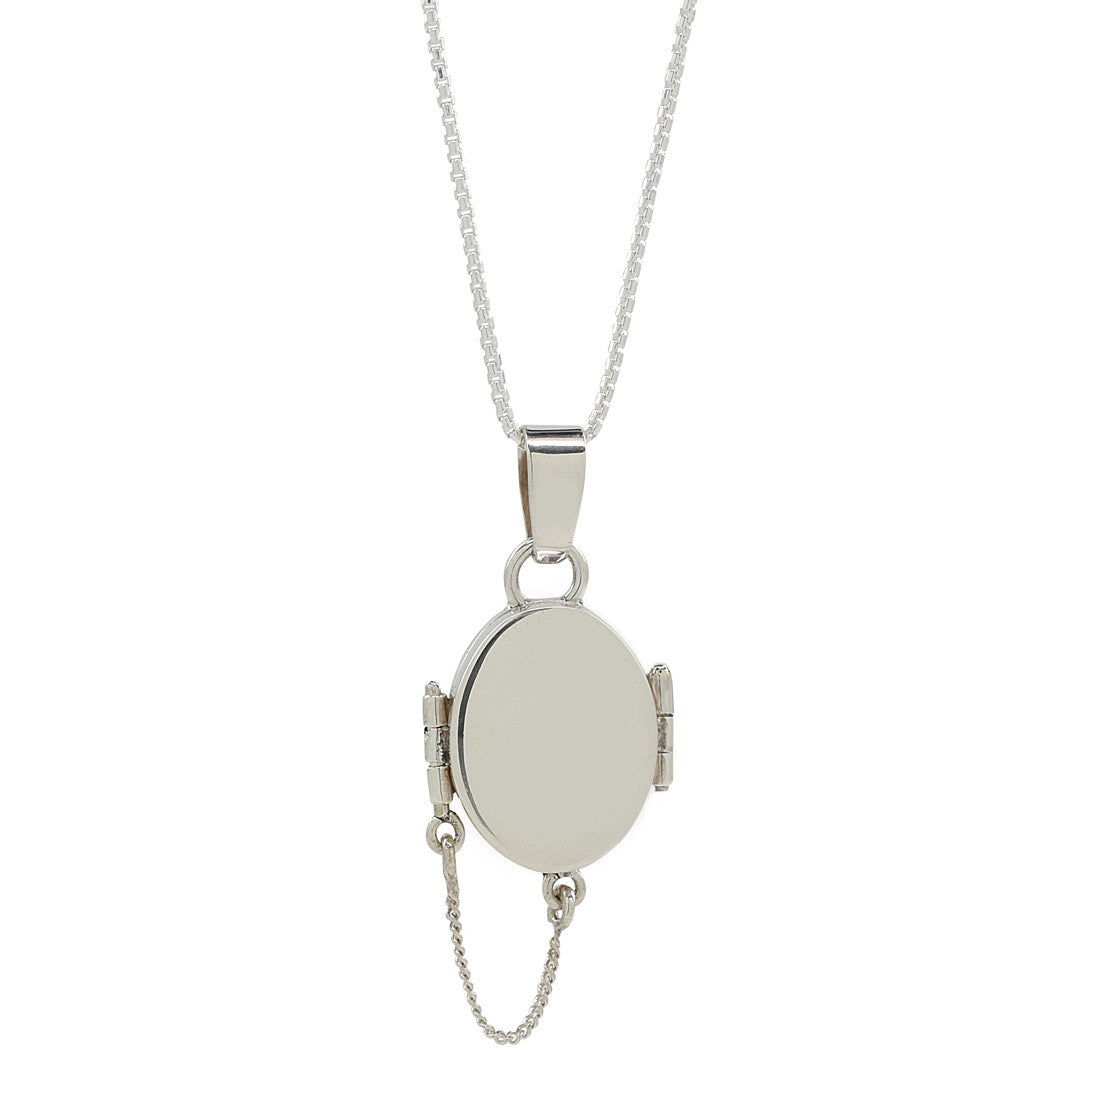 Silver Oval Locket Necklace - René Habie